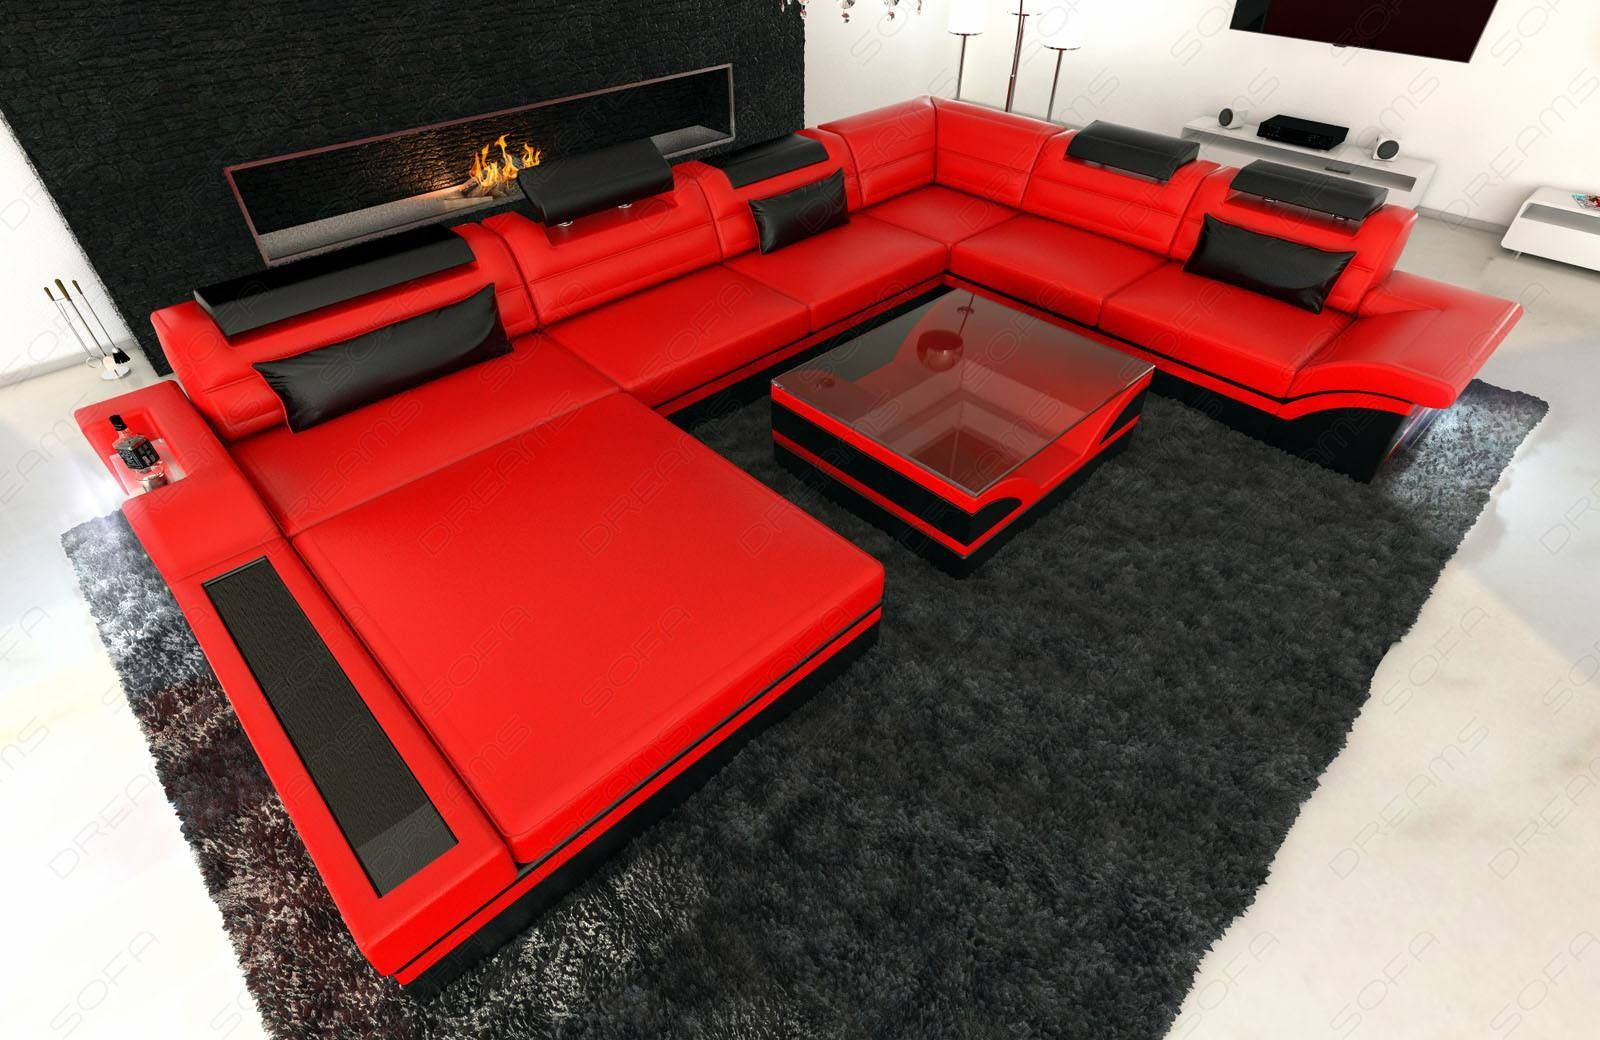 Design Sectional Sofa Orlando XL with LED Lights - red-black